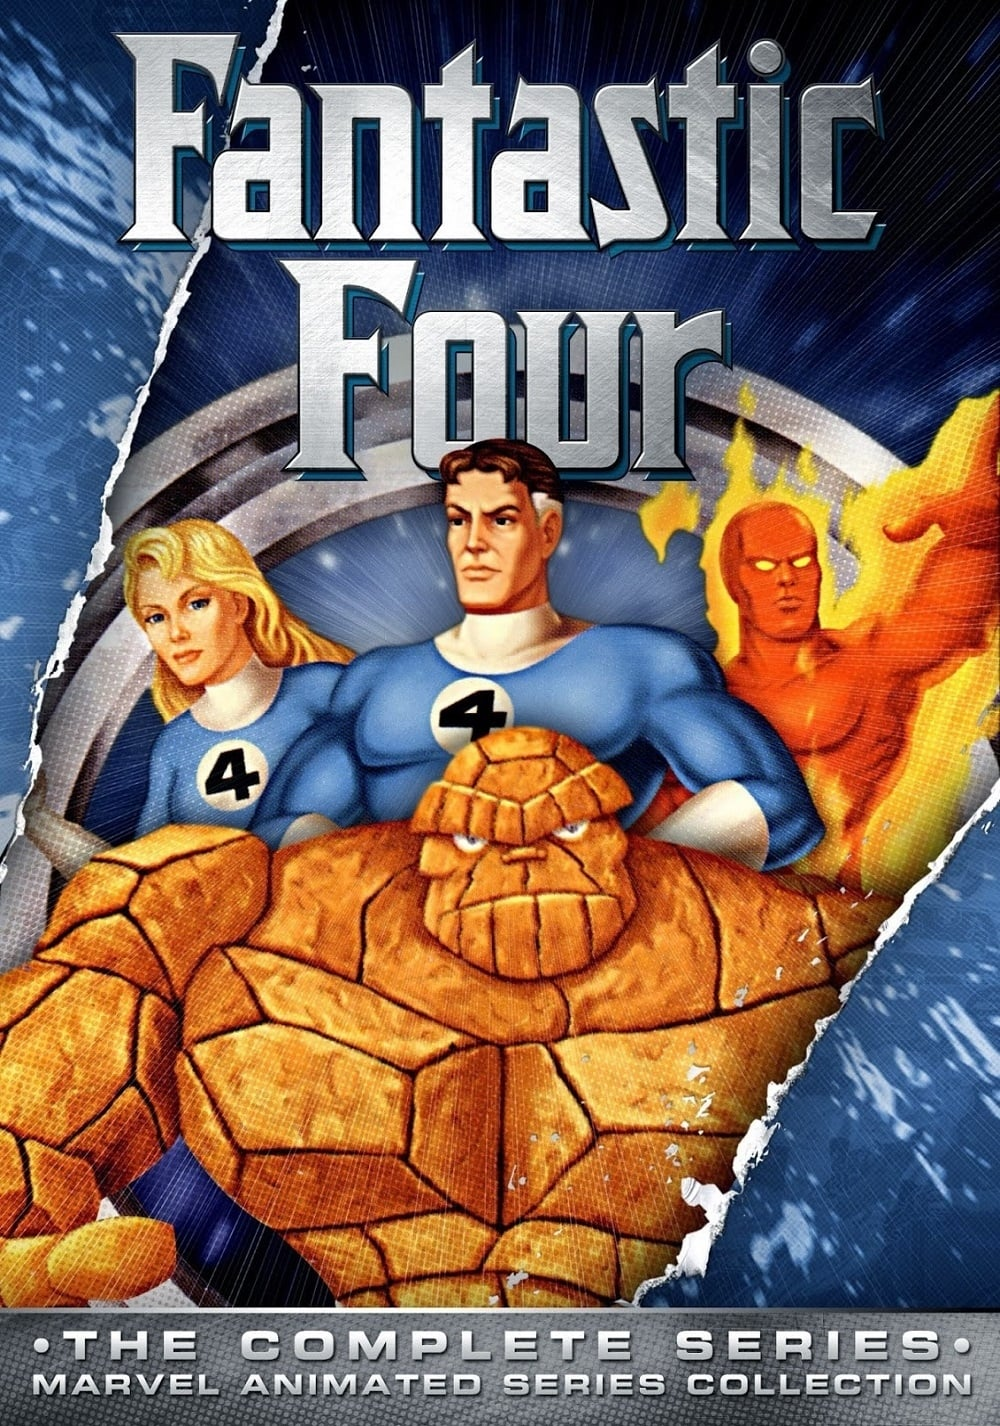 The Fantastic Four 1994